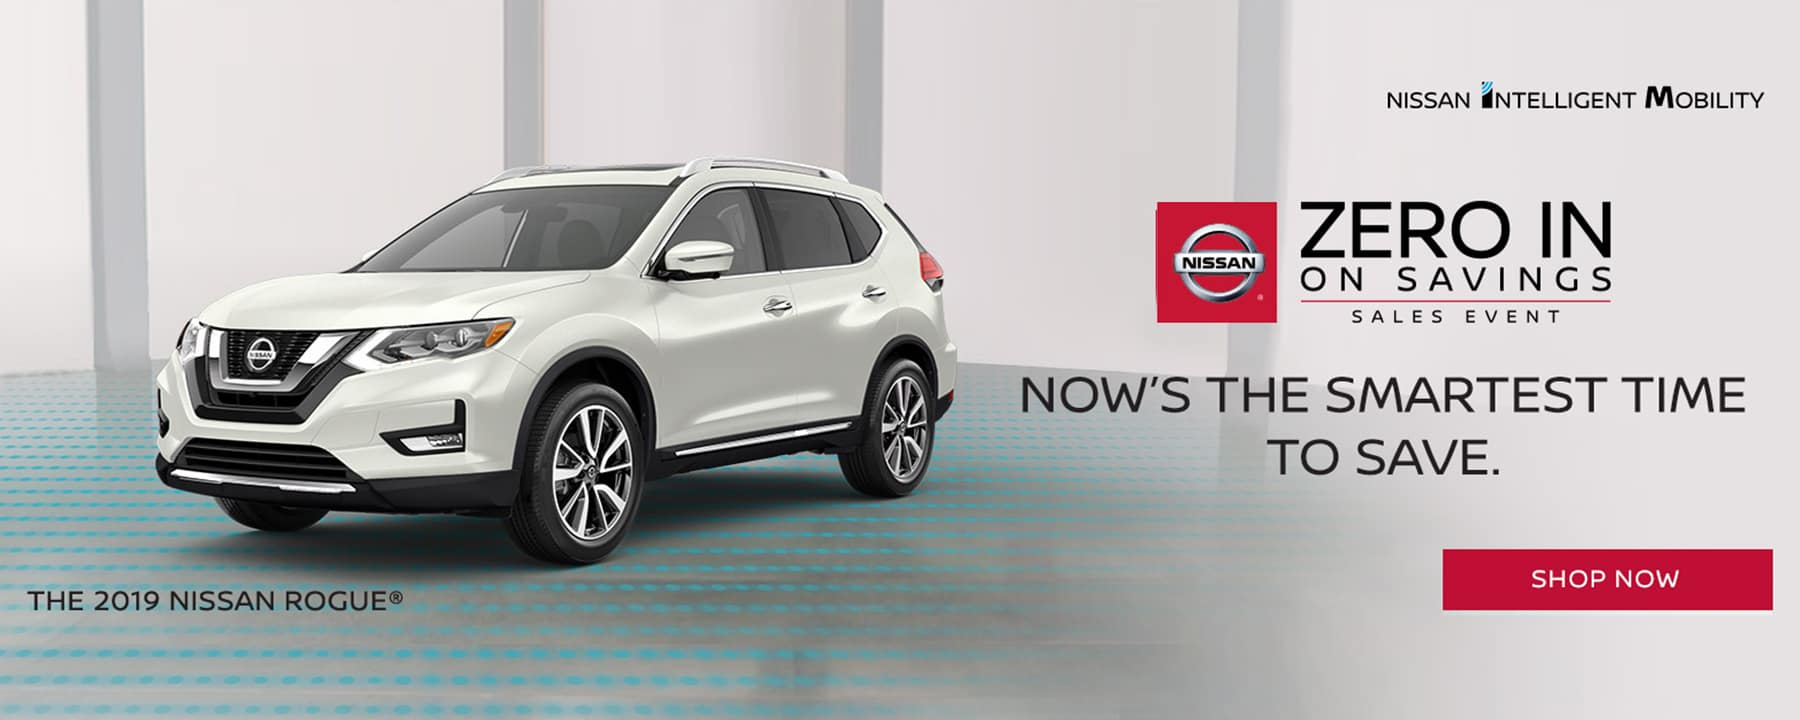 Zero in on Savings with a 2019 Nissan Rogue at Berman Nissan of Chicago!